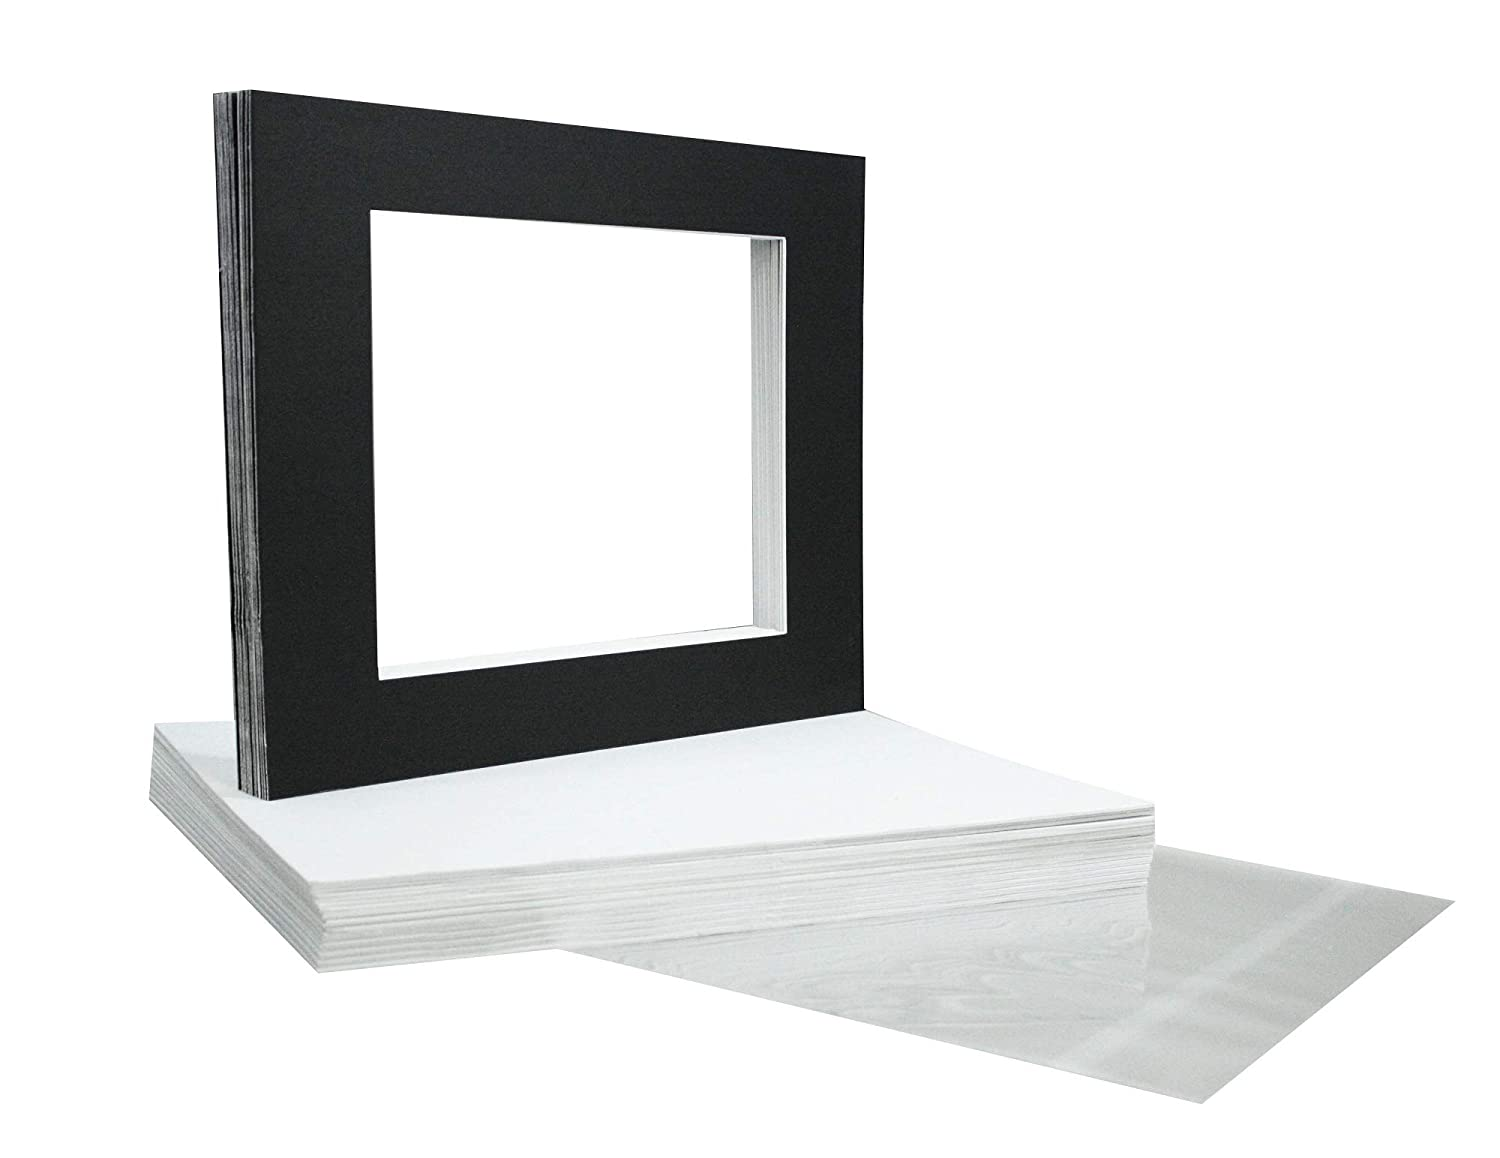 Pack of 25 11x14 BLACK Picture Mats Mattes with White Core Bevel Cut for 8x10 Photo +Backing +Bags Golden State Art FBA_PM92